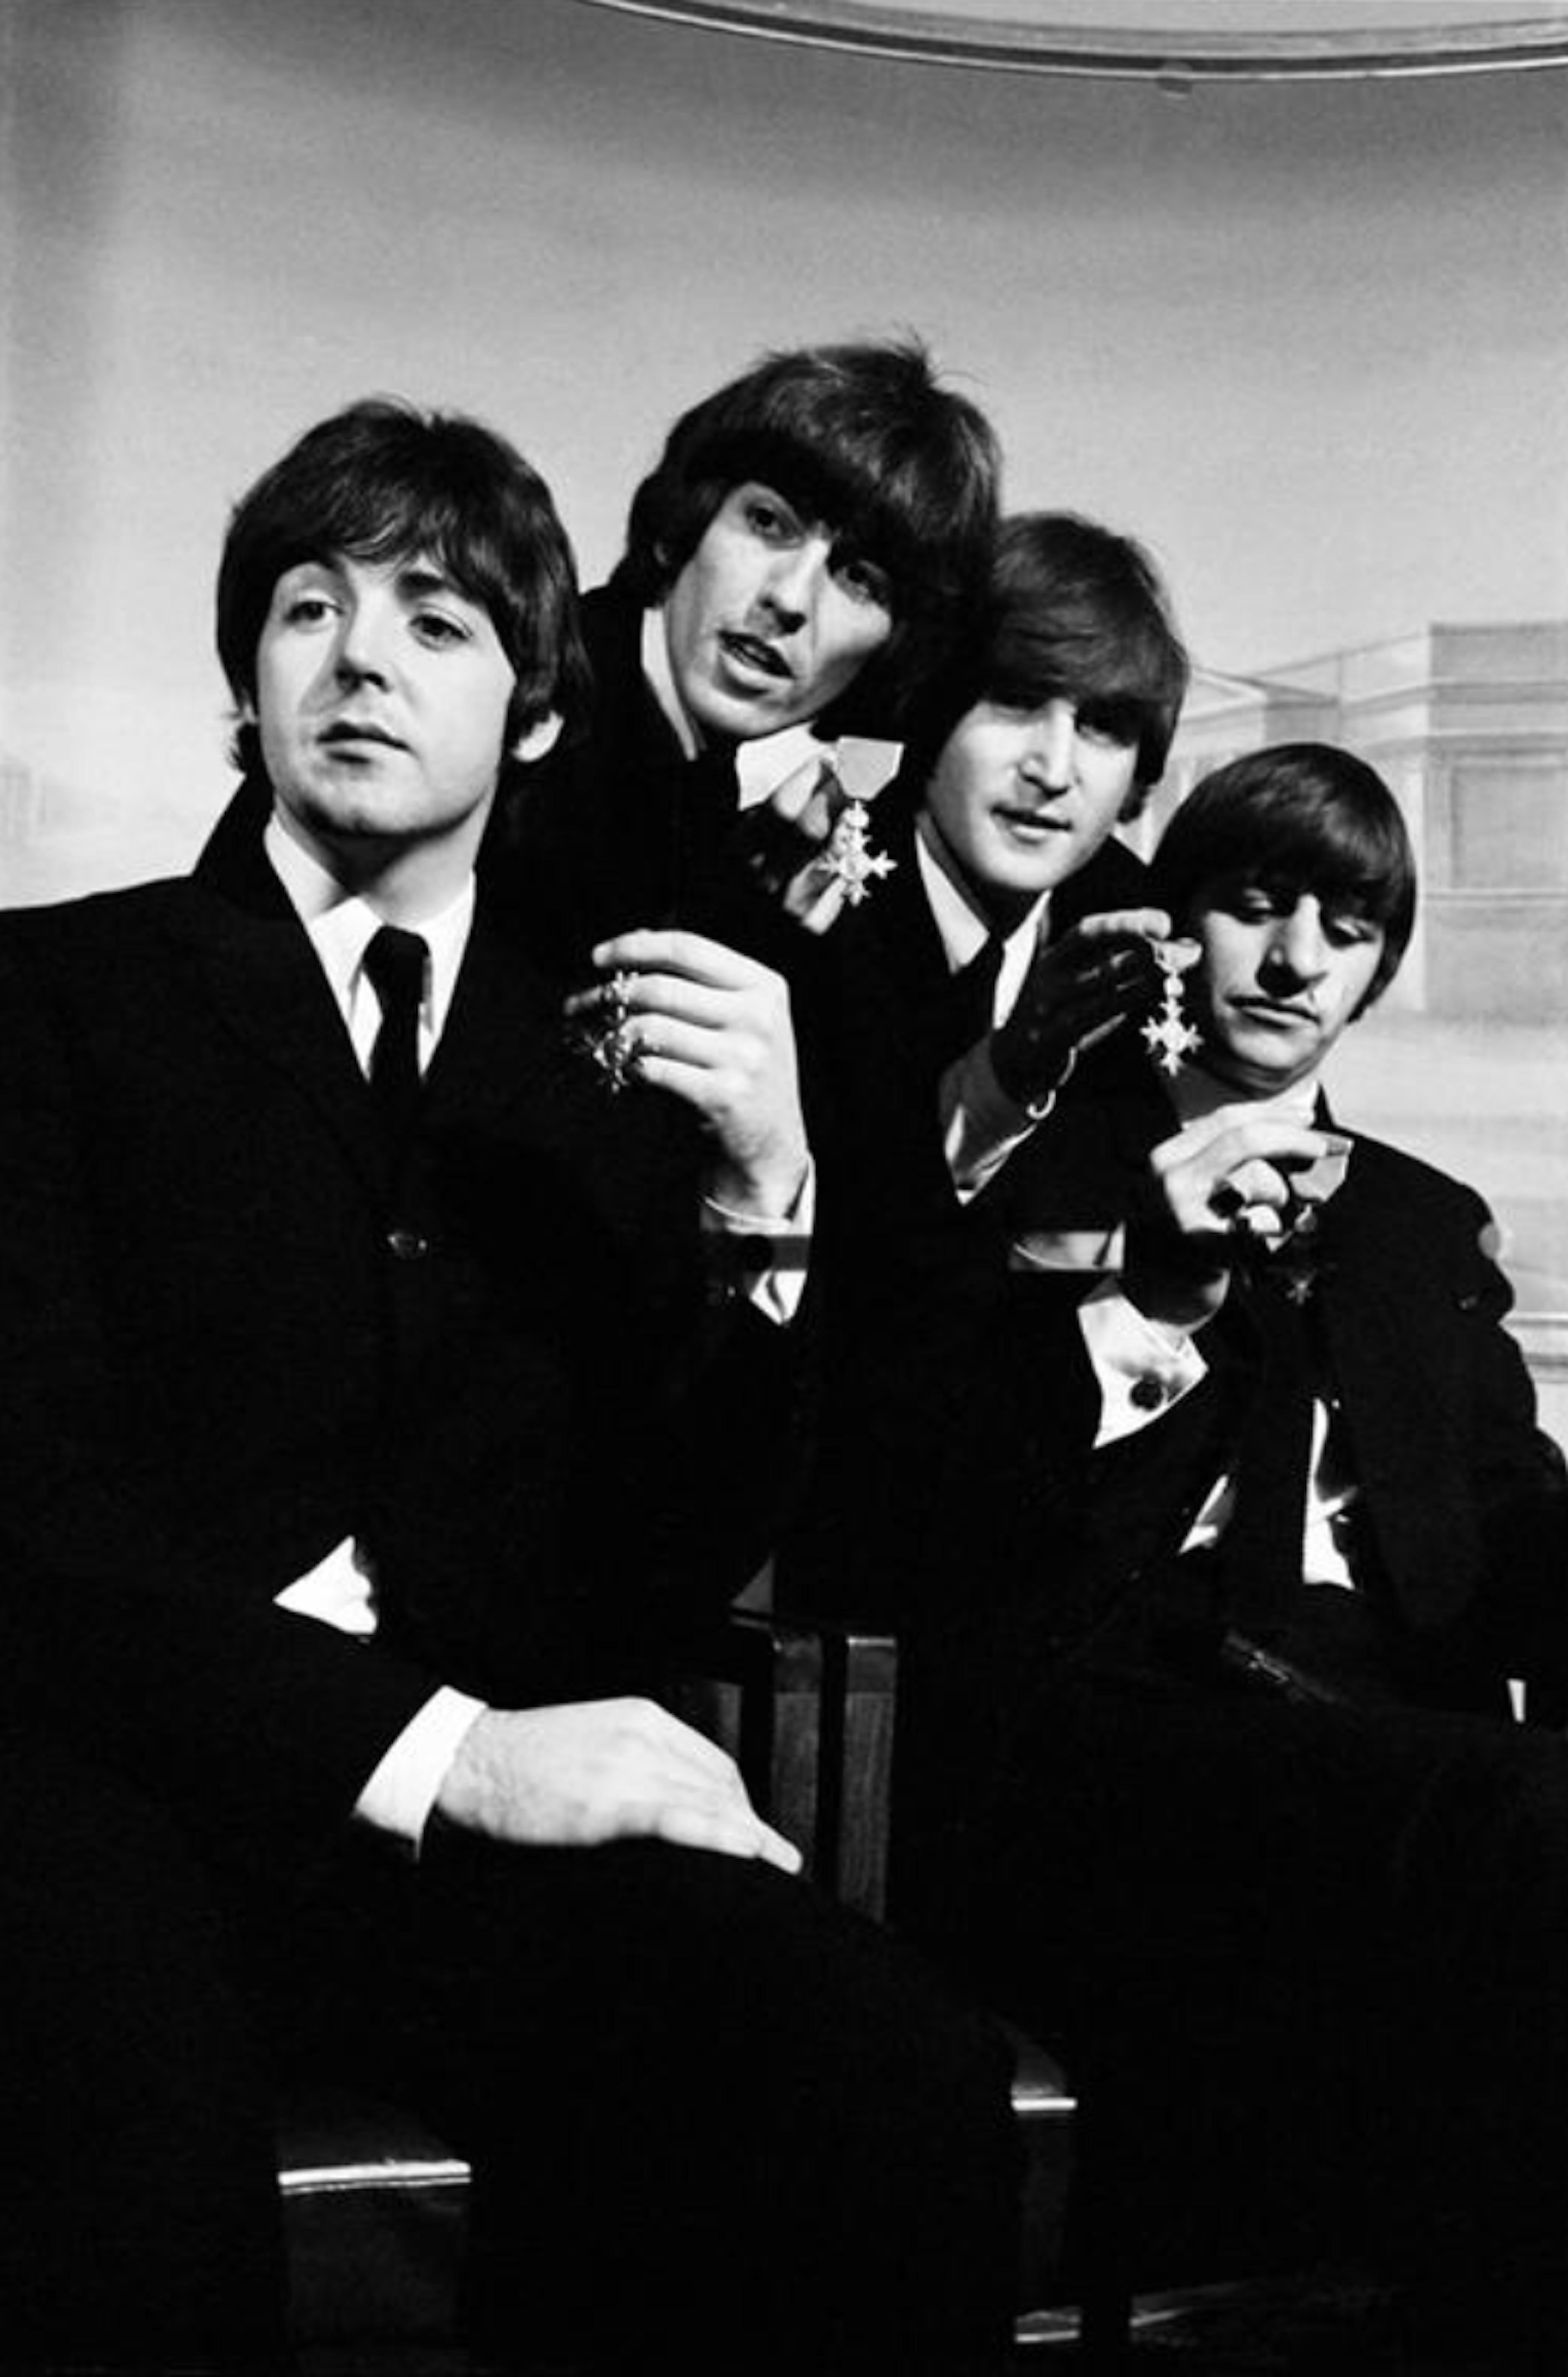 The Beatles, Time (1965)